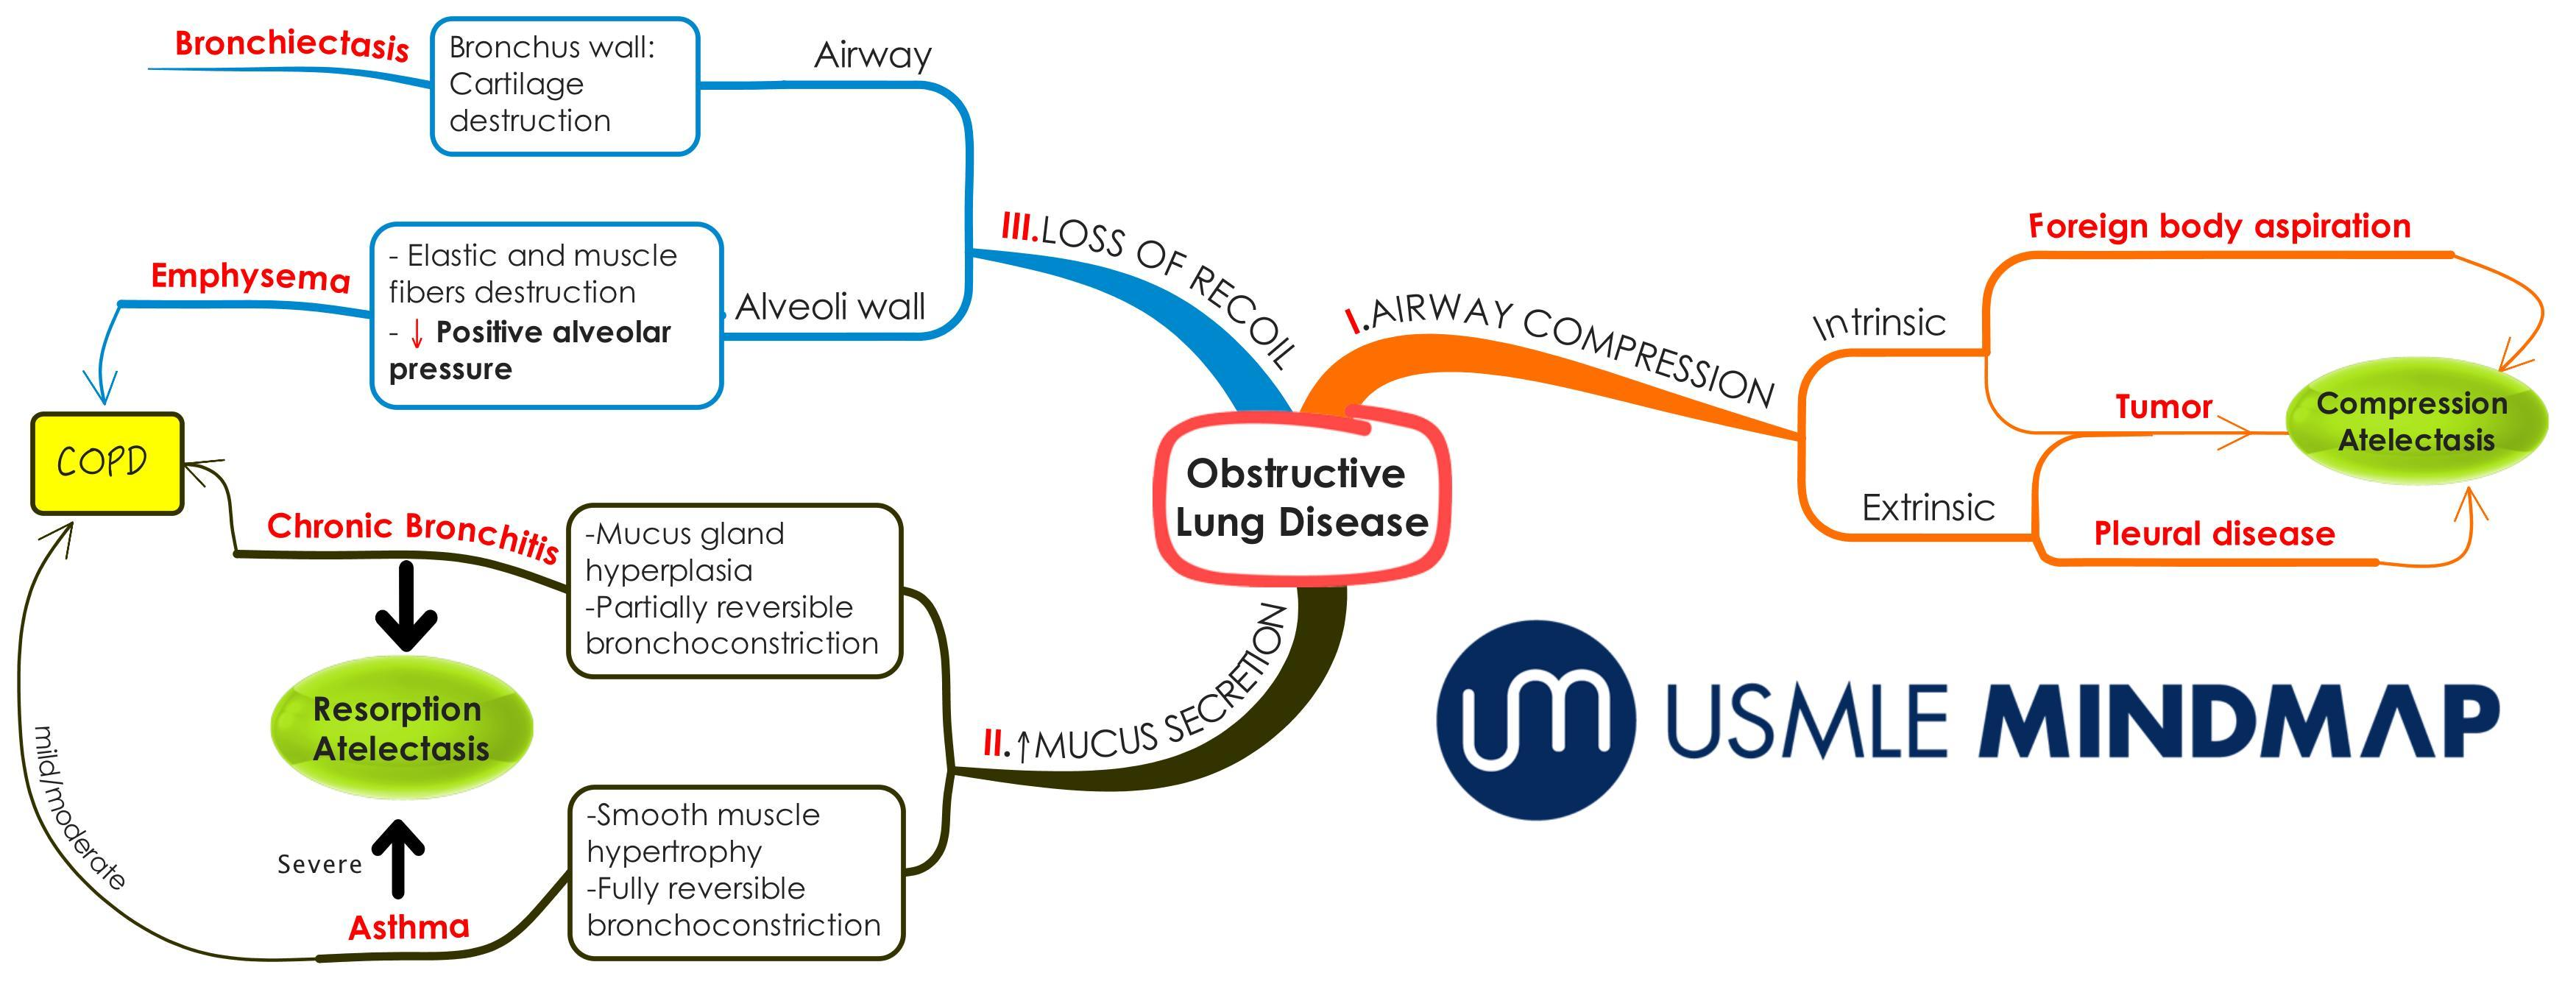 Obstructive Lung Disease Mind Map